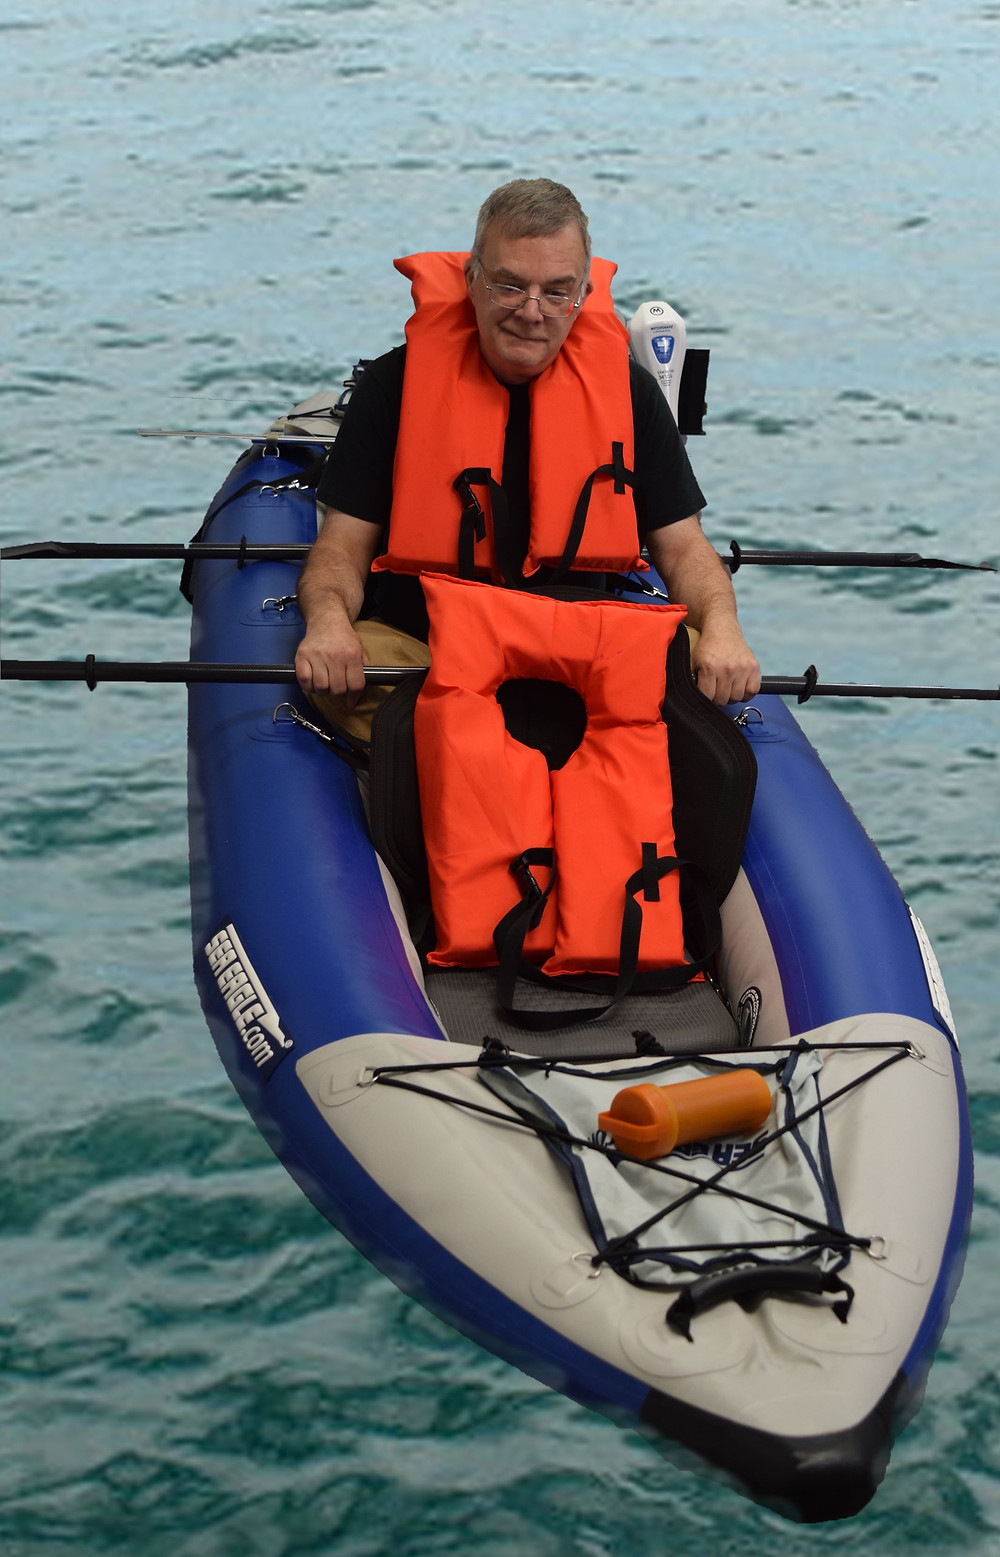 Man in inflatable kayak, thinking about selling it.